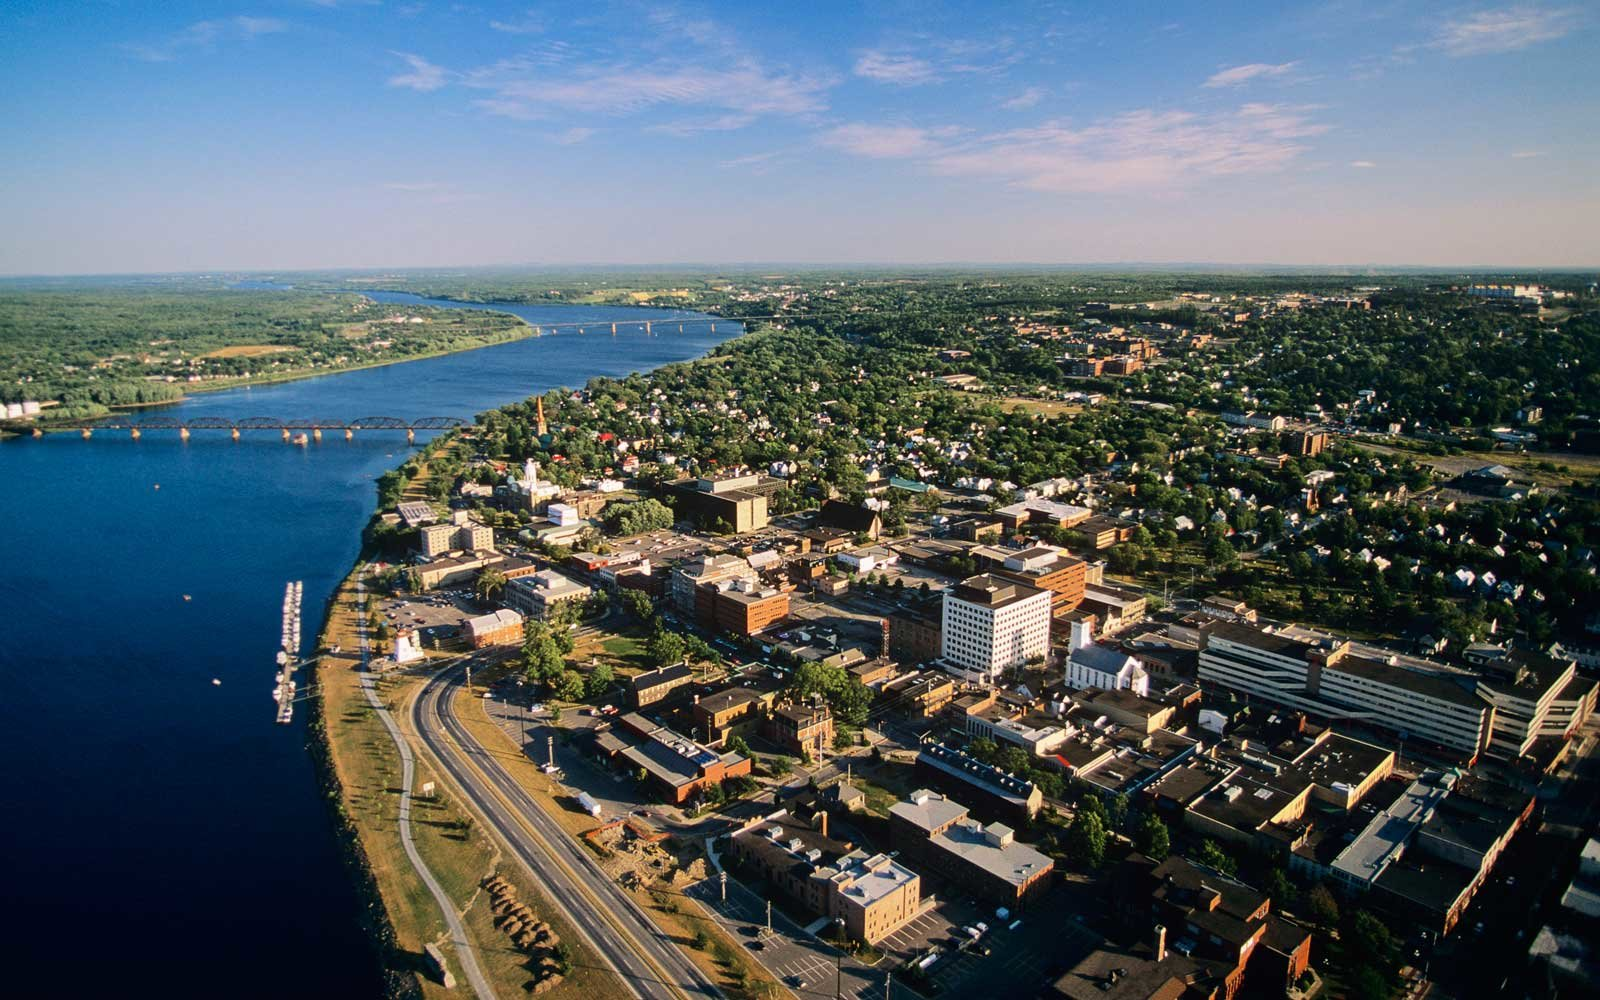 Aerial view of Fredericton, New Brunswick, Canada